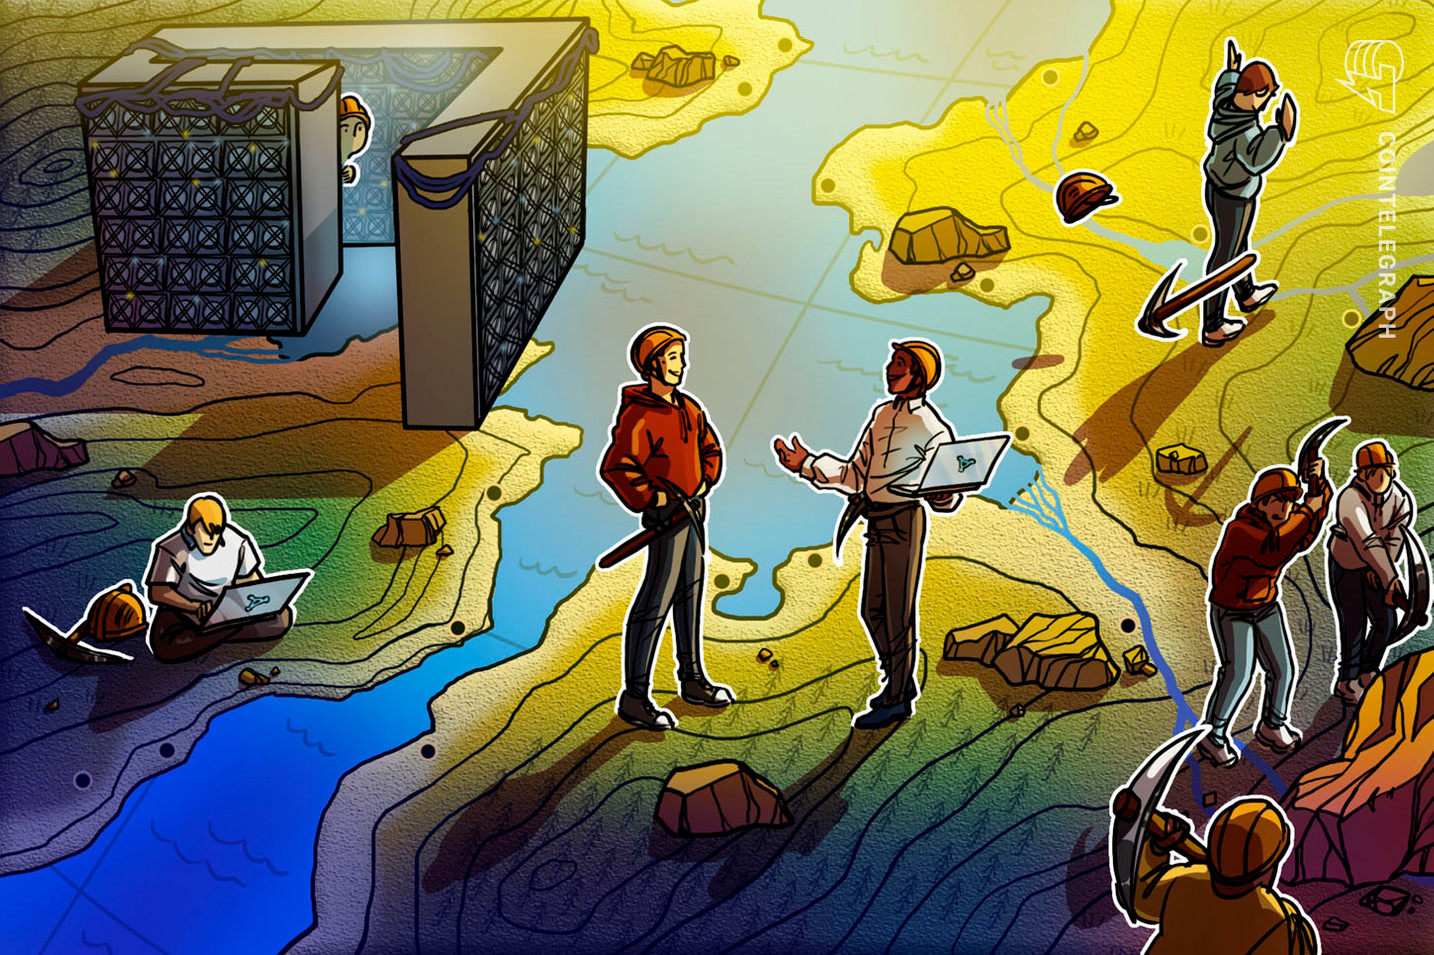 Exclusive: Chinese Group Looking to Buy One of Latin America's Largest Bitcoin Mines